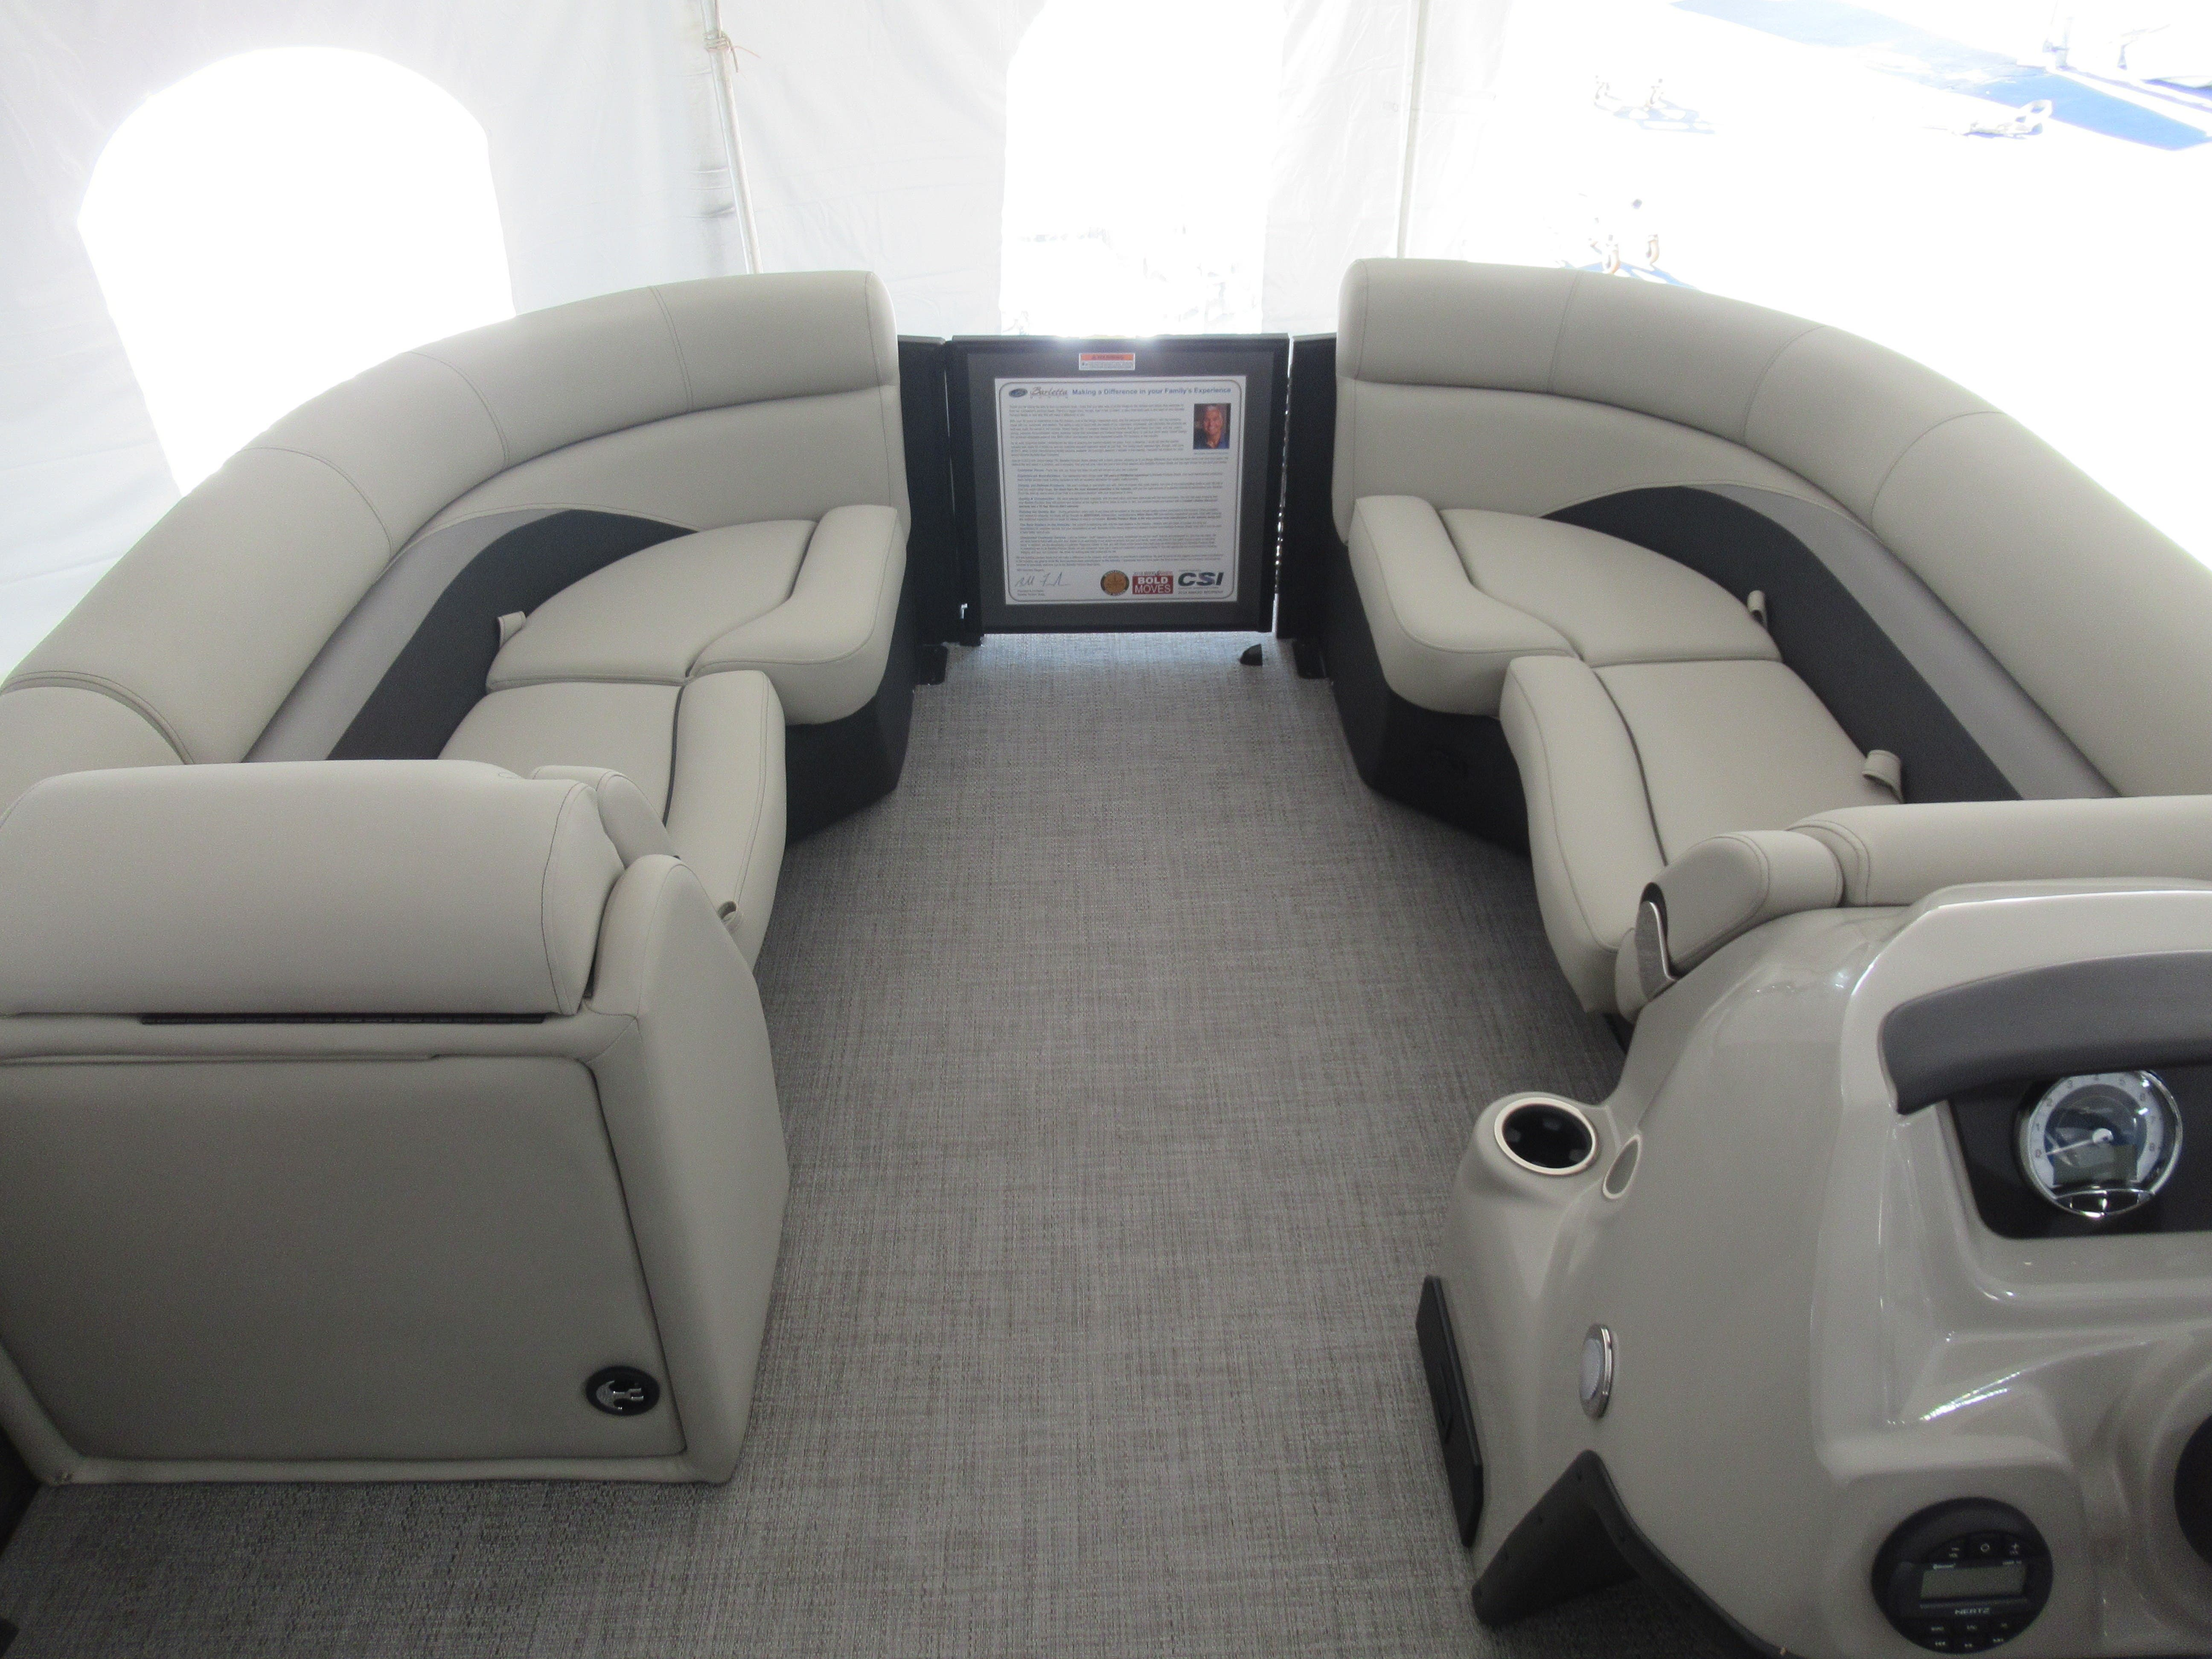 2021 Barletta boat for sale, model of the boat is C20QC & Image # 4 of 11